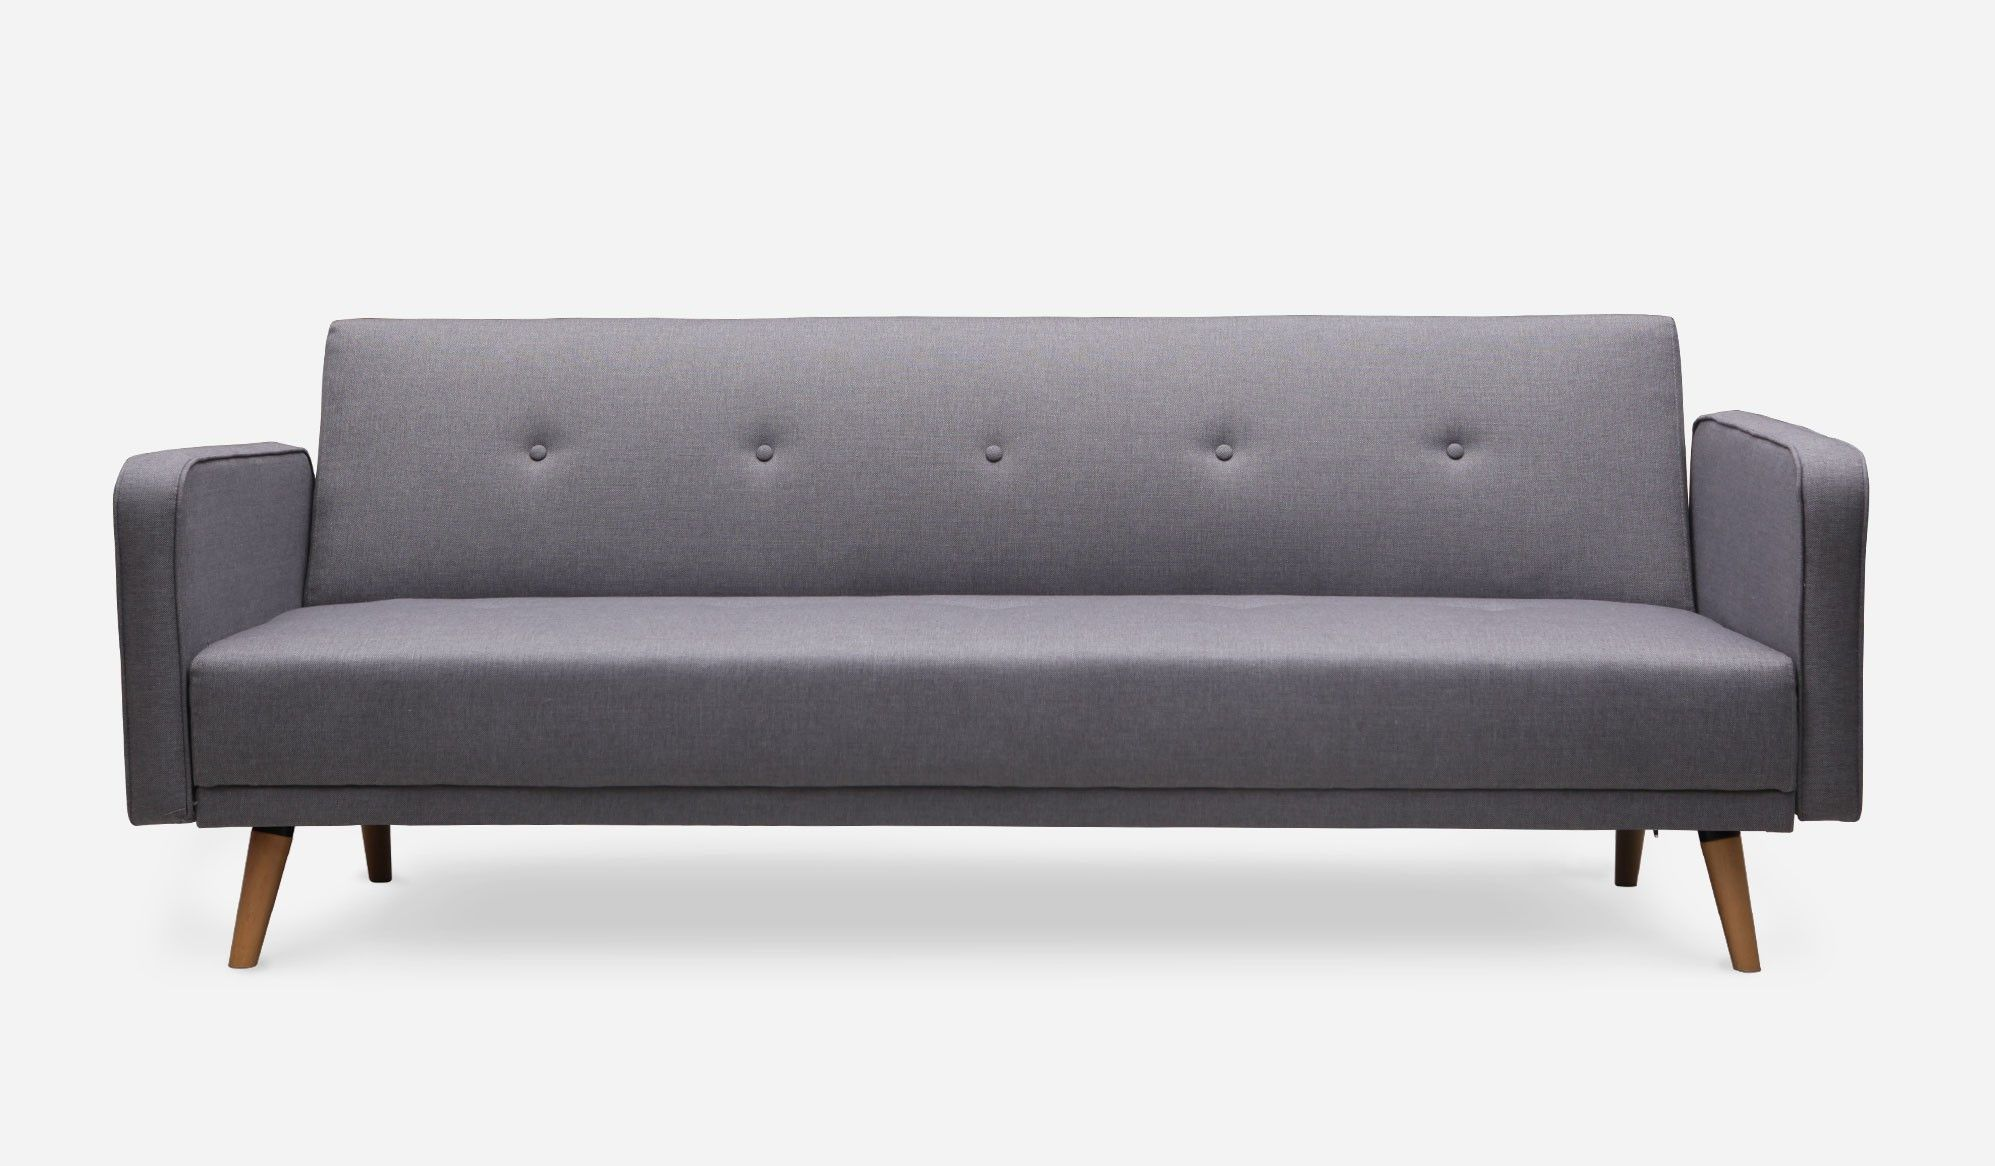 Nathan Sofa Bed, Smoked Gray By Castlery. | Singapore Interior | Pinterest  | Interiors